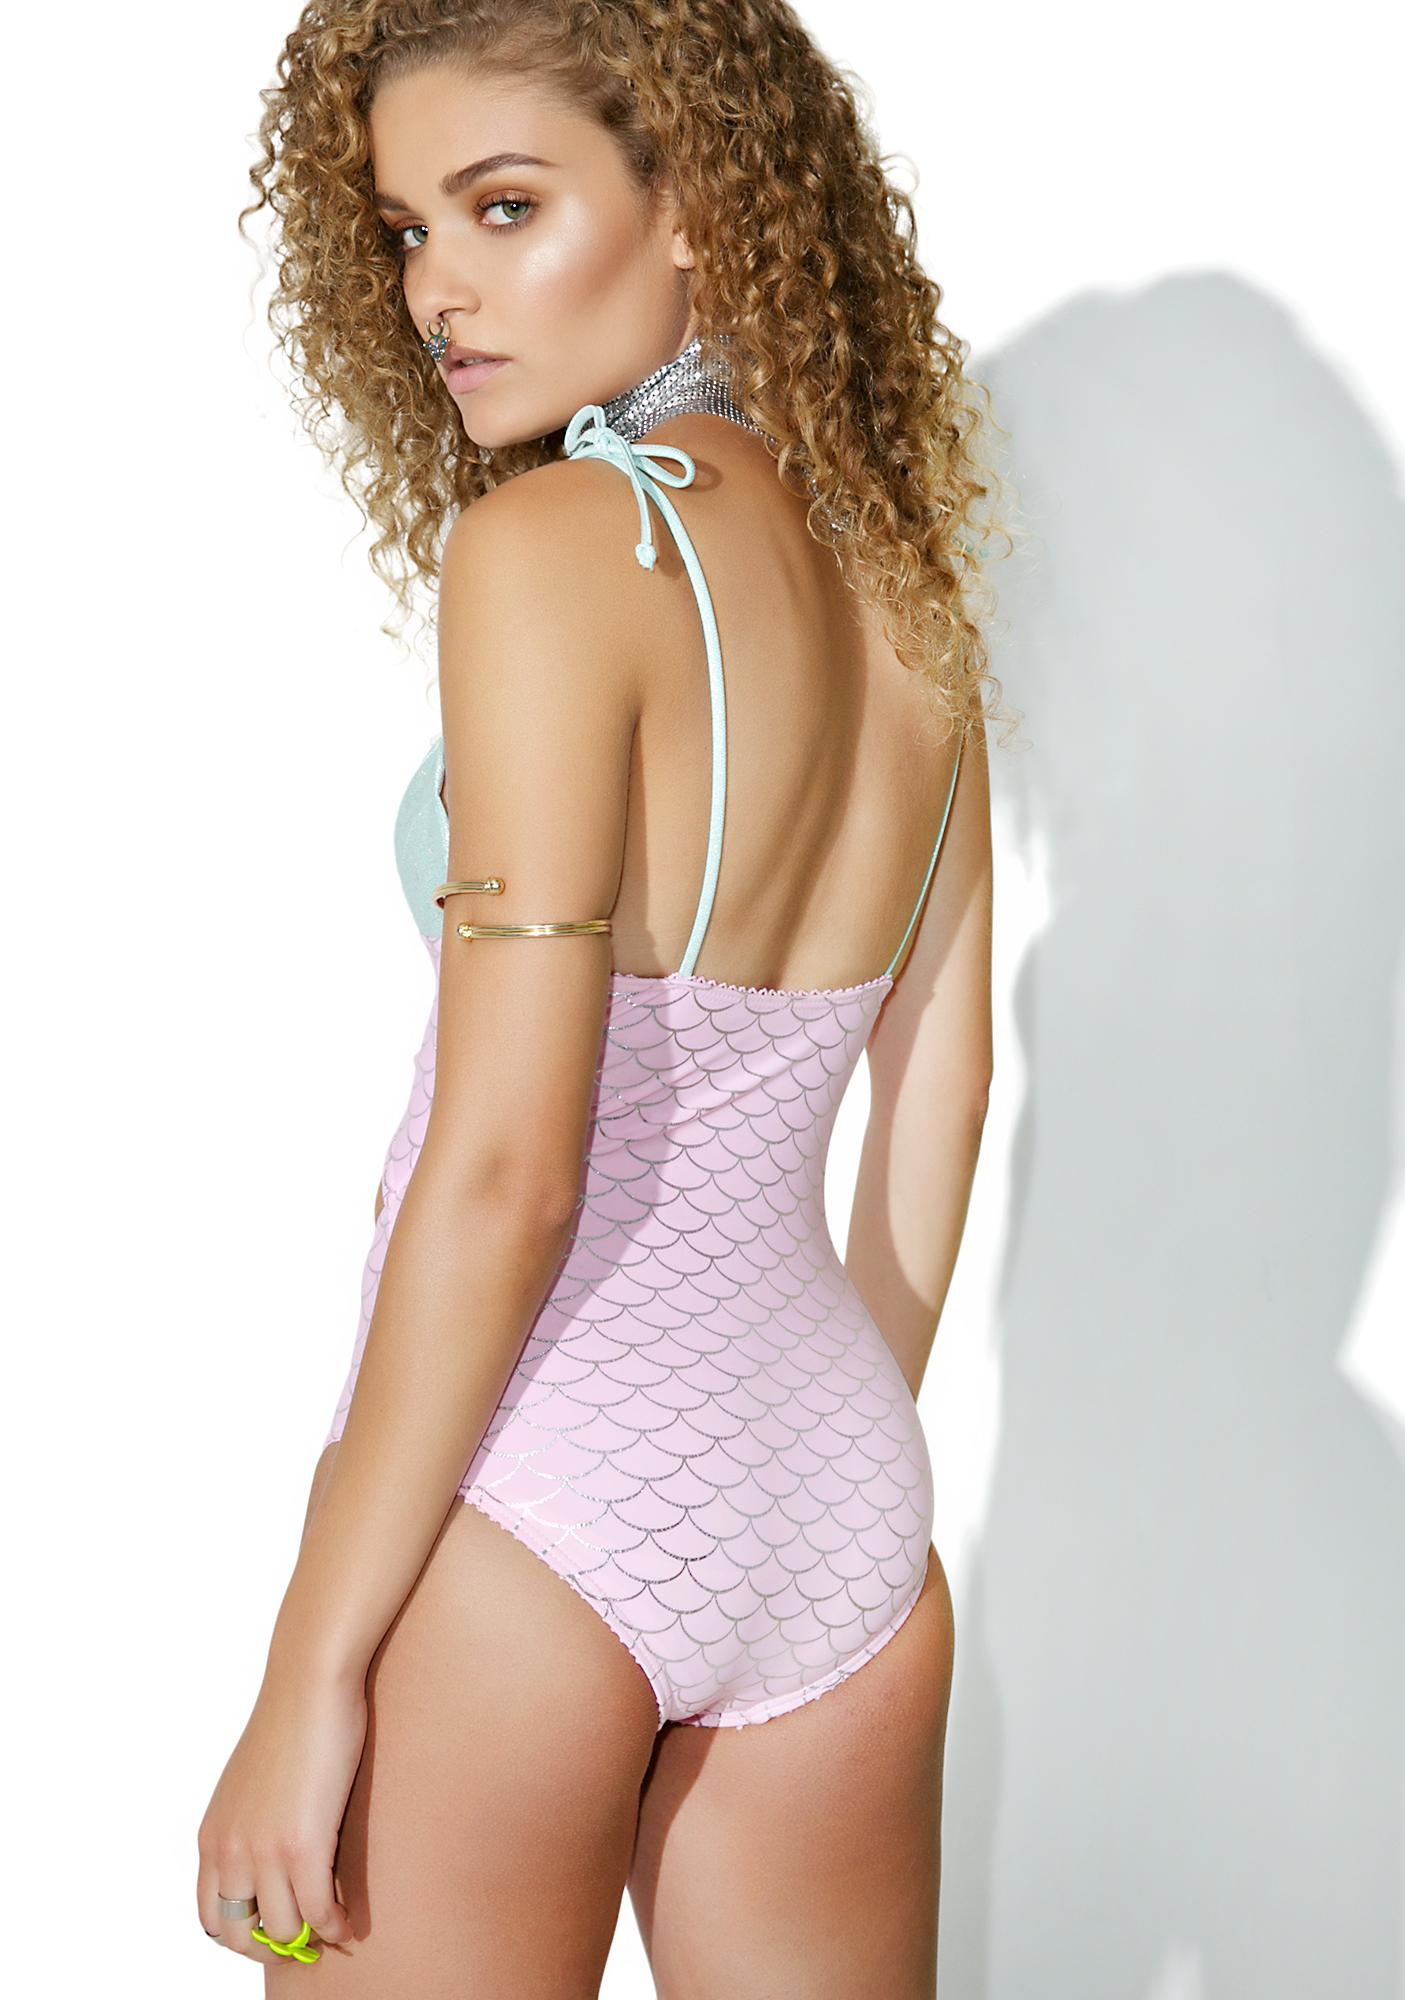 Syren's Kiss Cutout One Piece